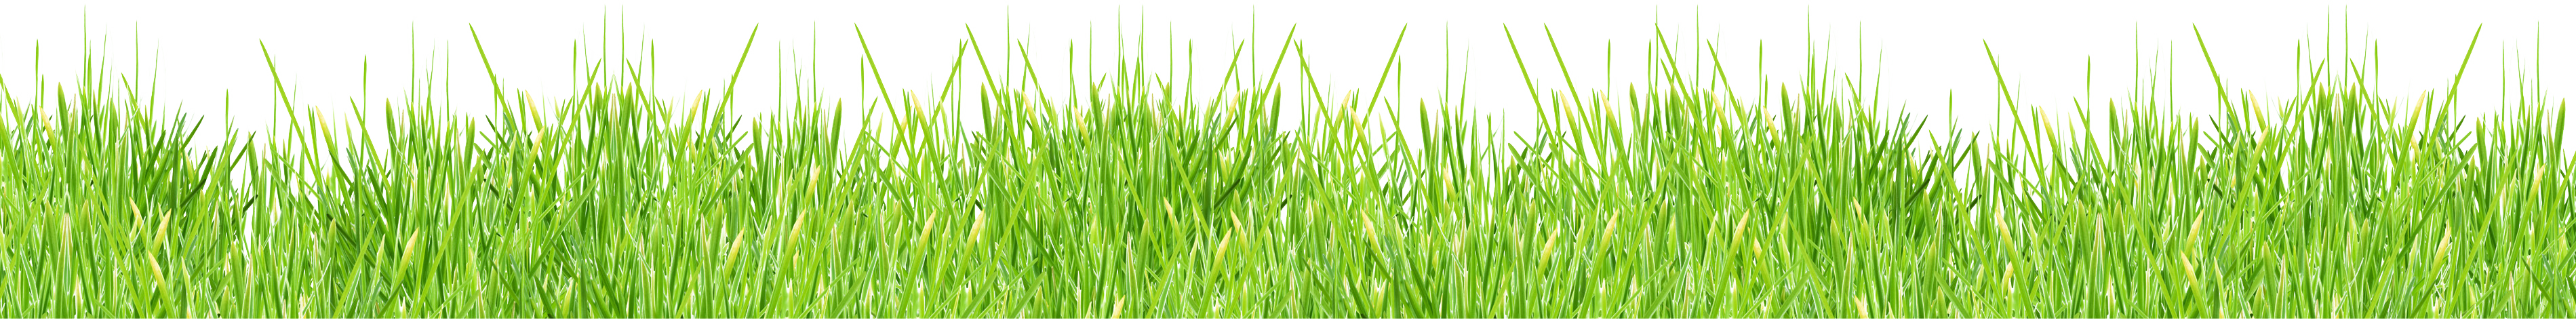 Football field background clipart svg transparent stock Grass PNG images, pictures svg transparent stock